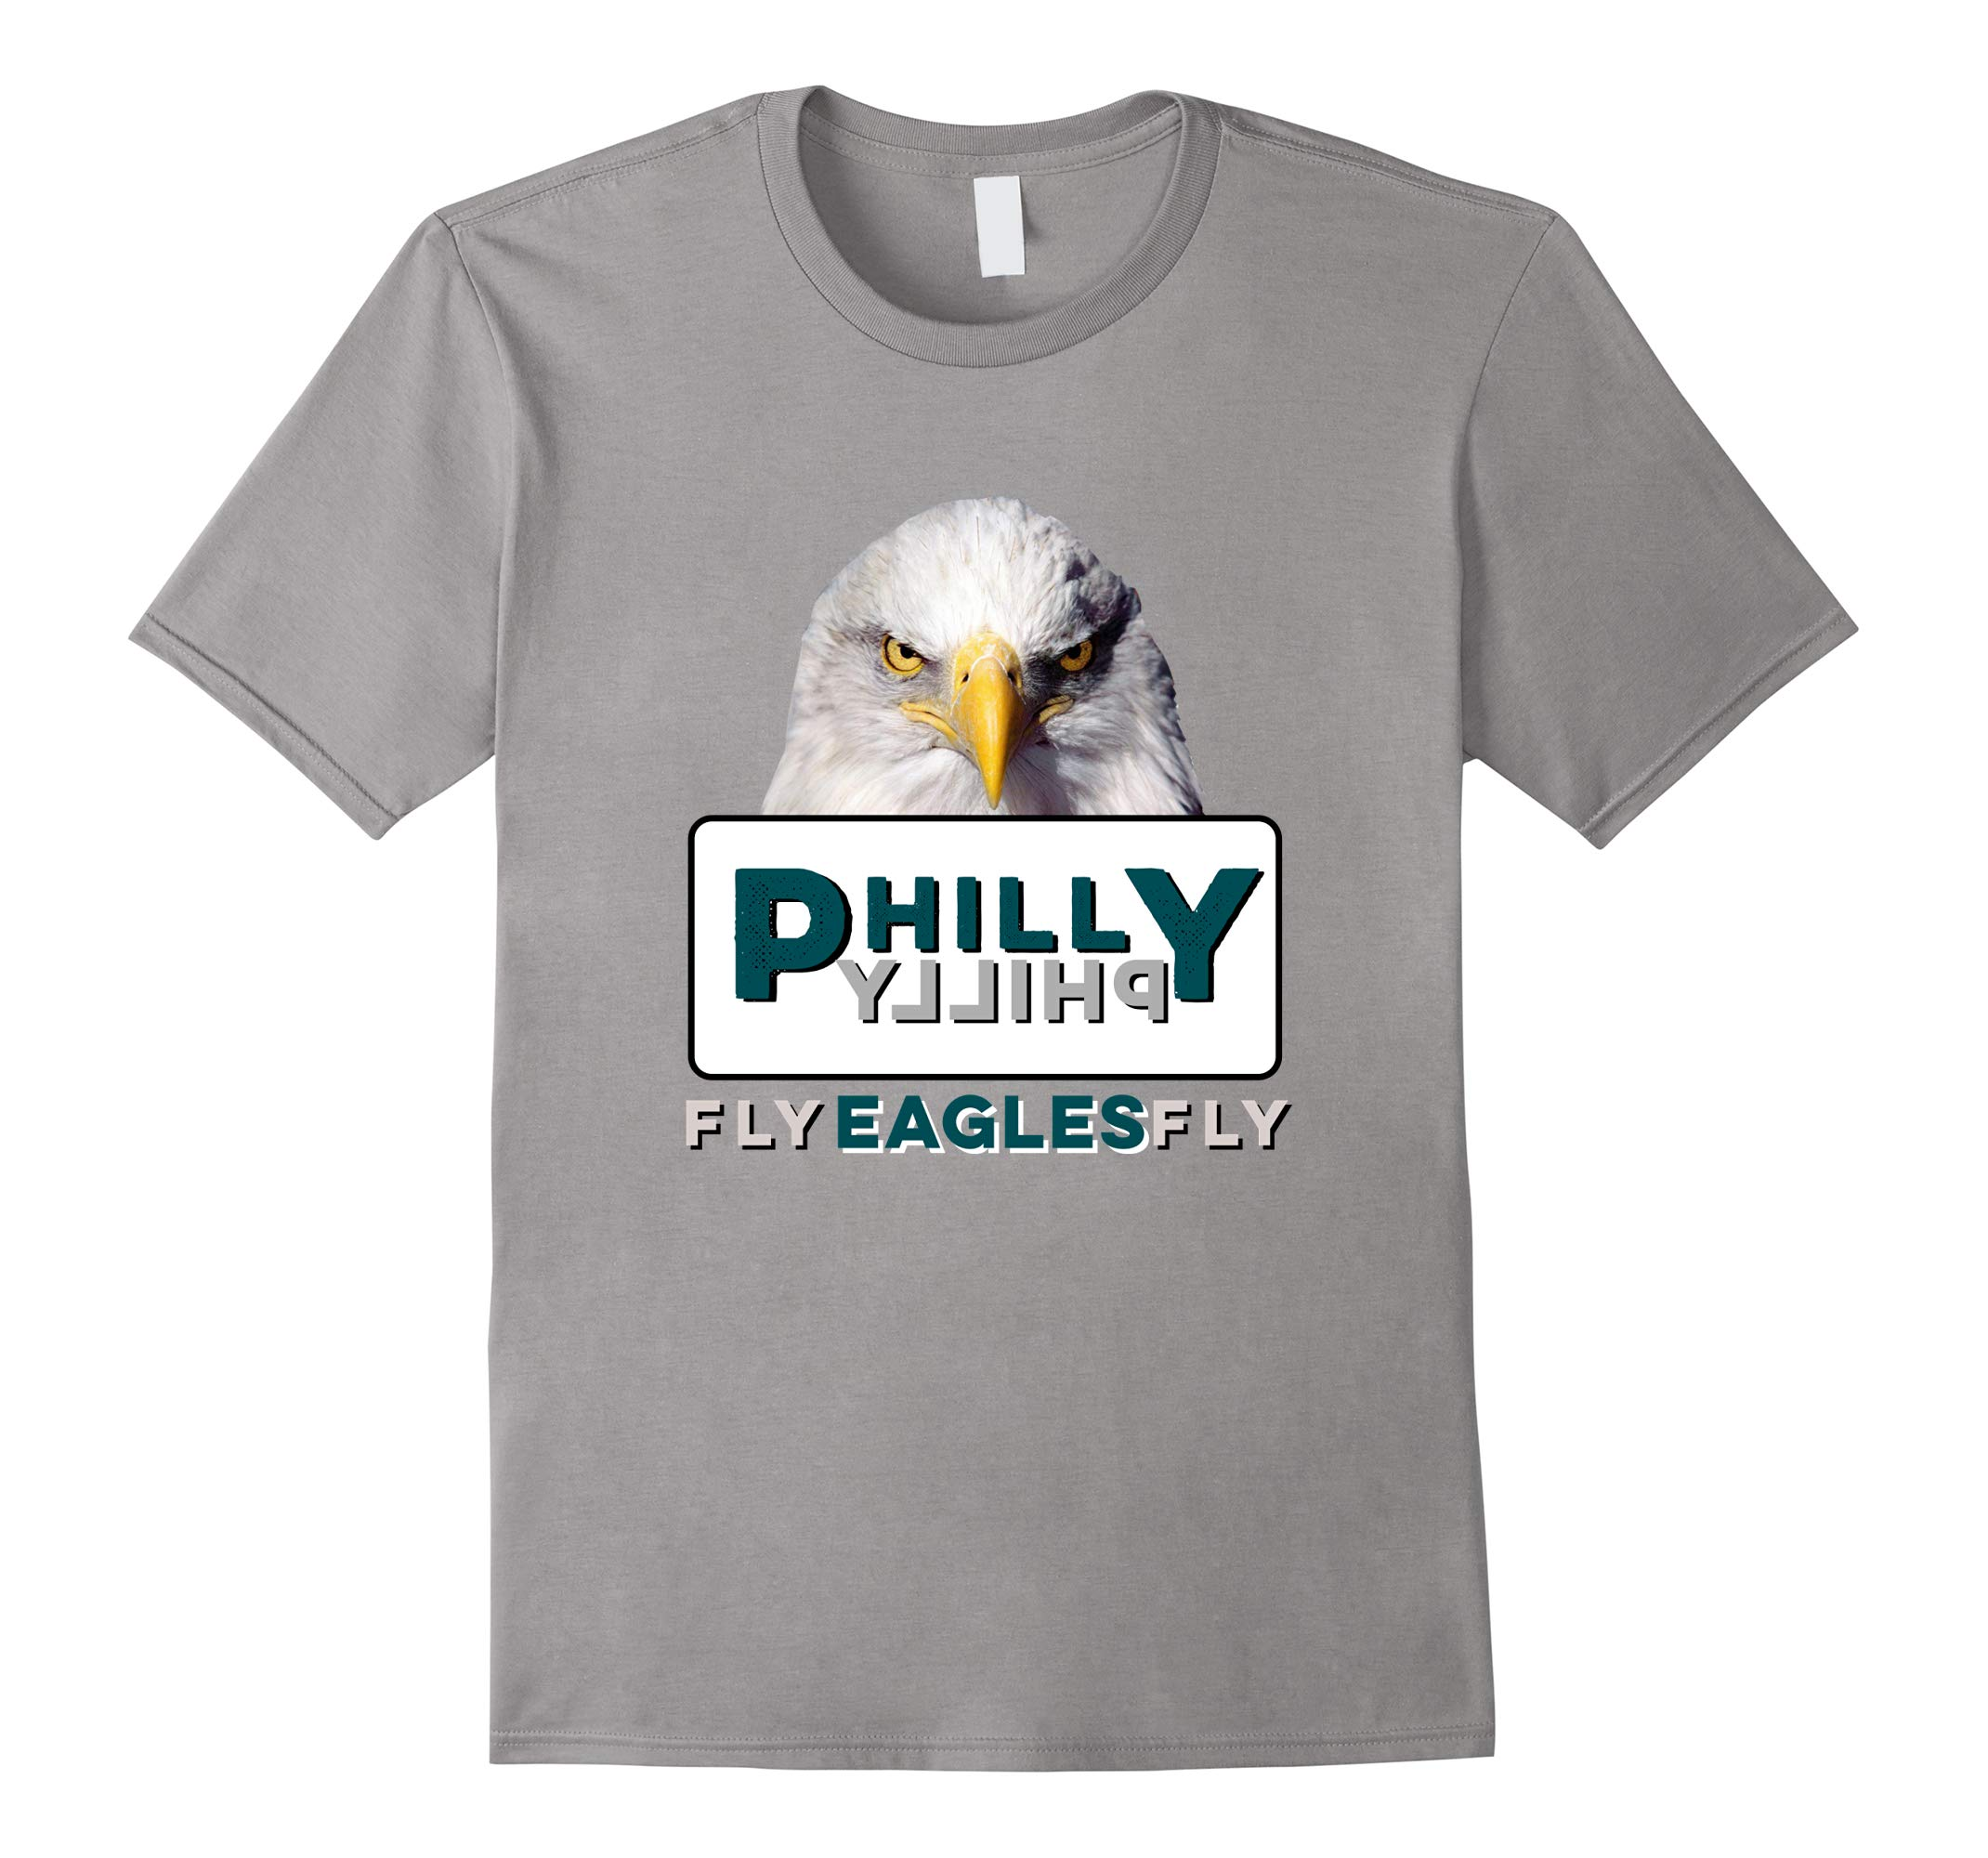 2018 Fly Eagles Fly Philly Philly Support Gift T-Shirt-RT